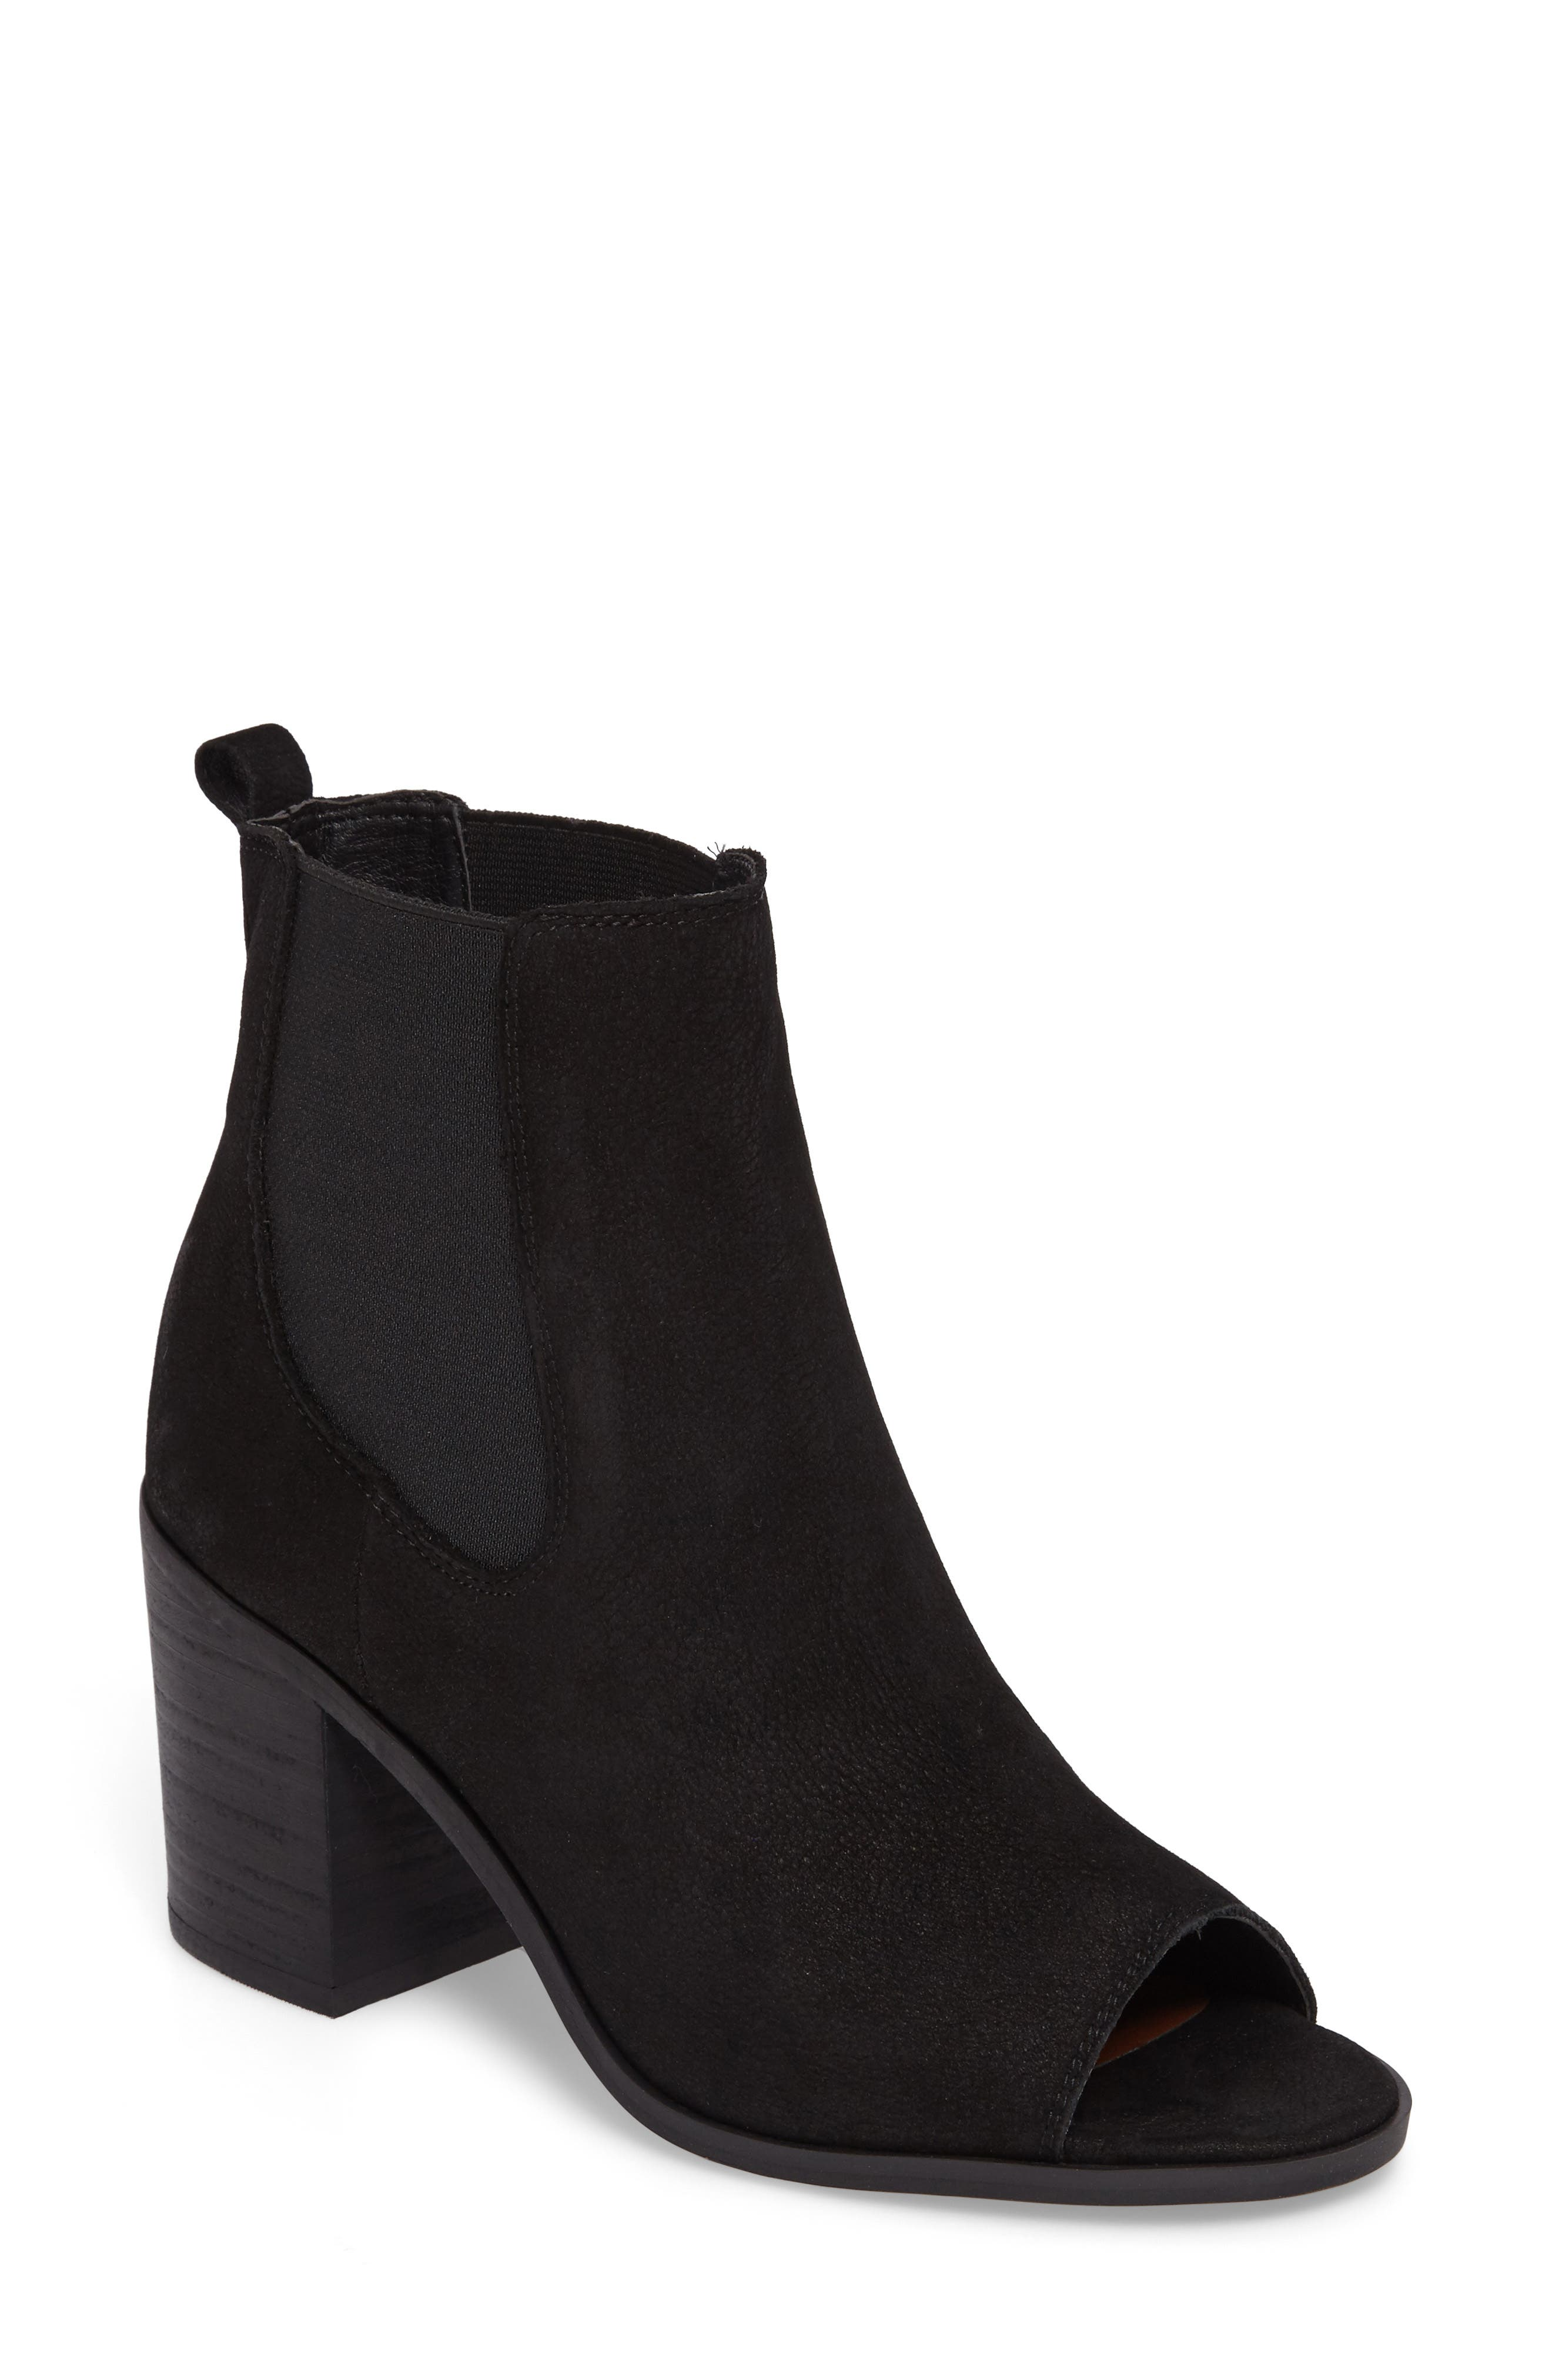 Kassidy Open Toe Chelsea Bootie,                             Main thumbnail 1, color,                             002